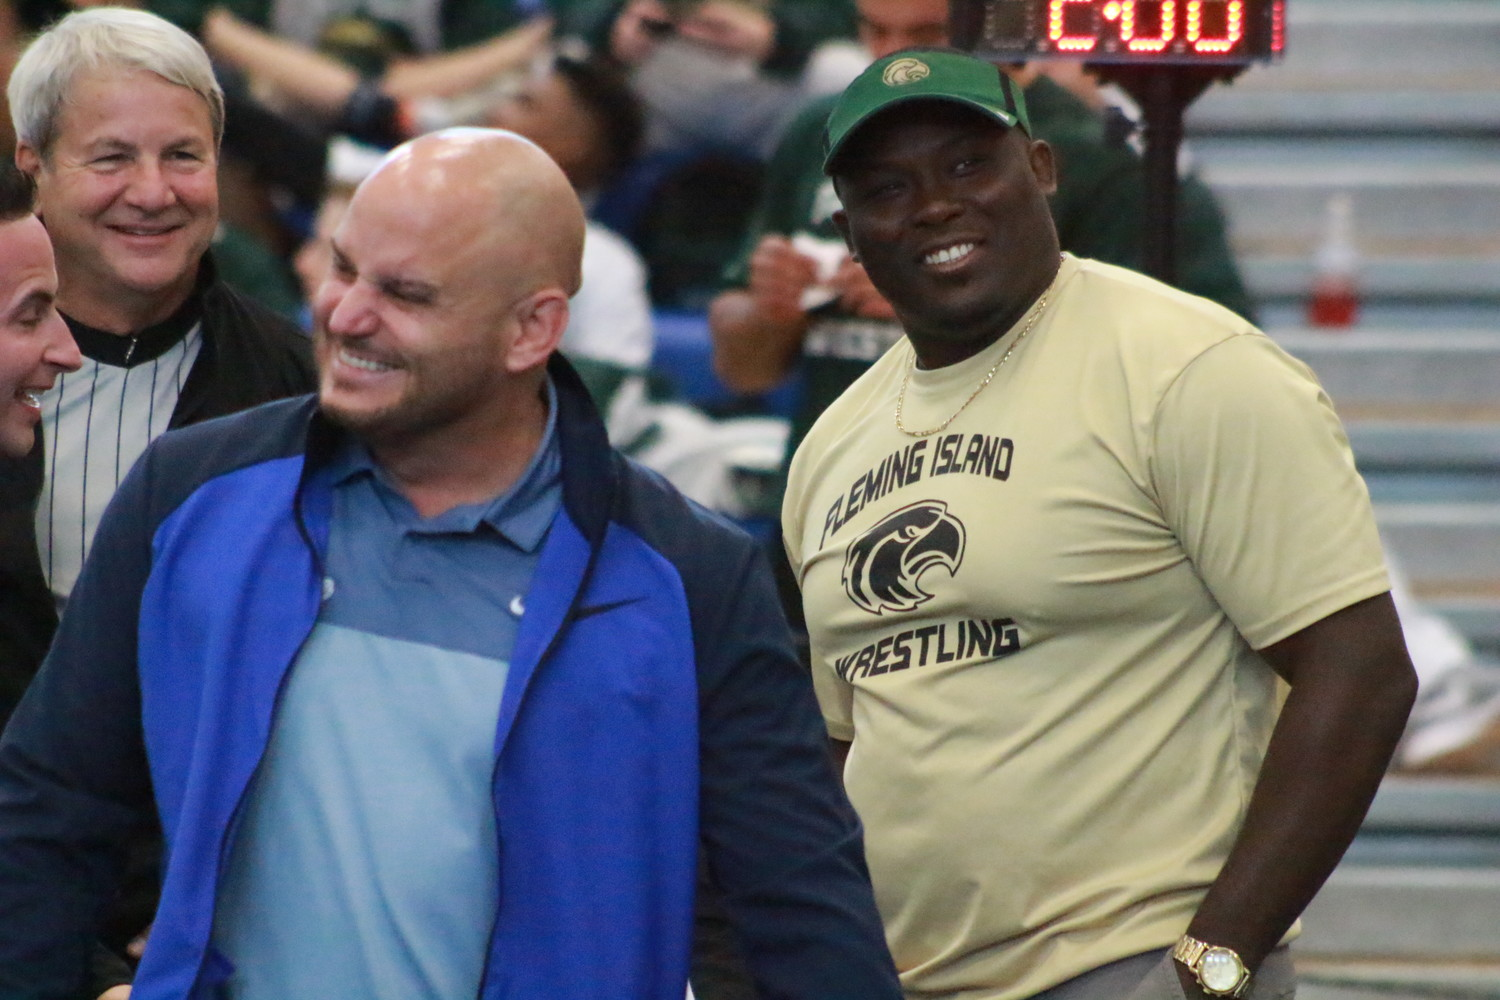 Fleming Island wrestling coach P.J. Cobbert, right, smiles in pre-championship match moment with long-time South Dade coach Victor Balmeceda, who has 12 state titles in his pocket.